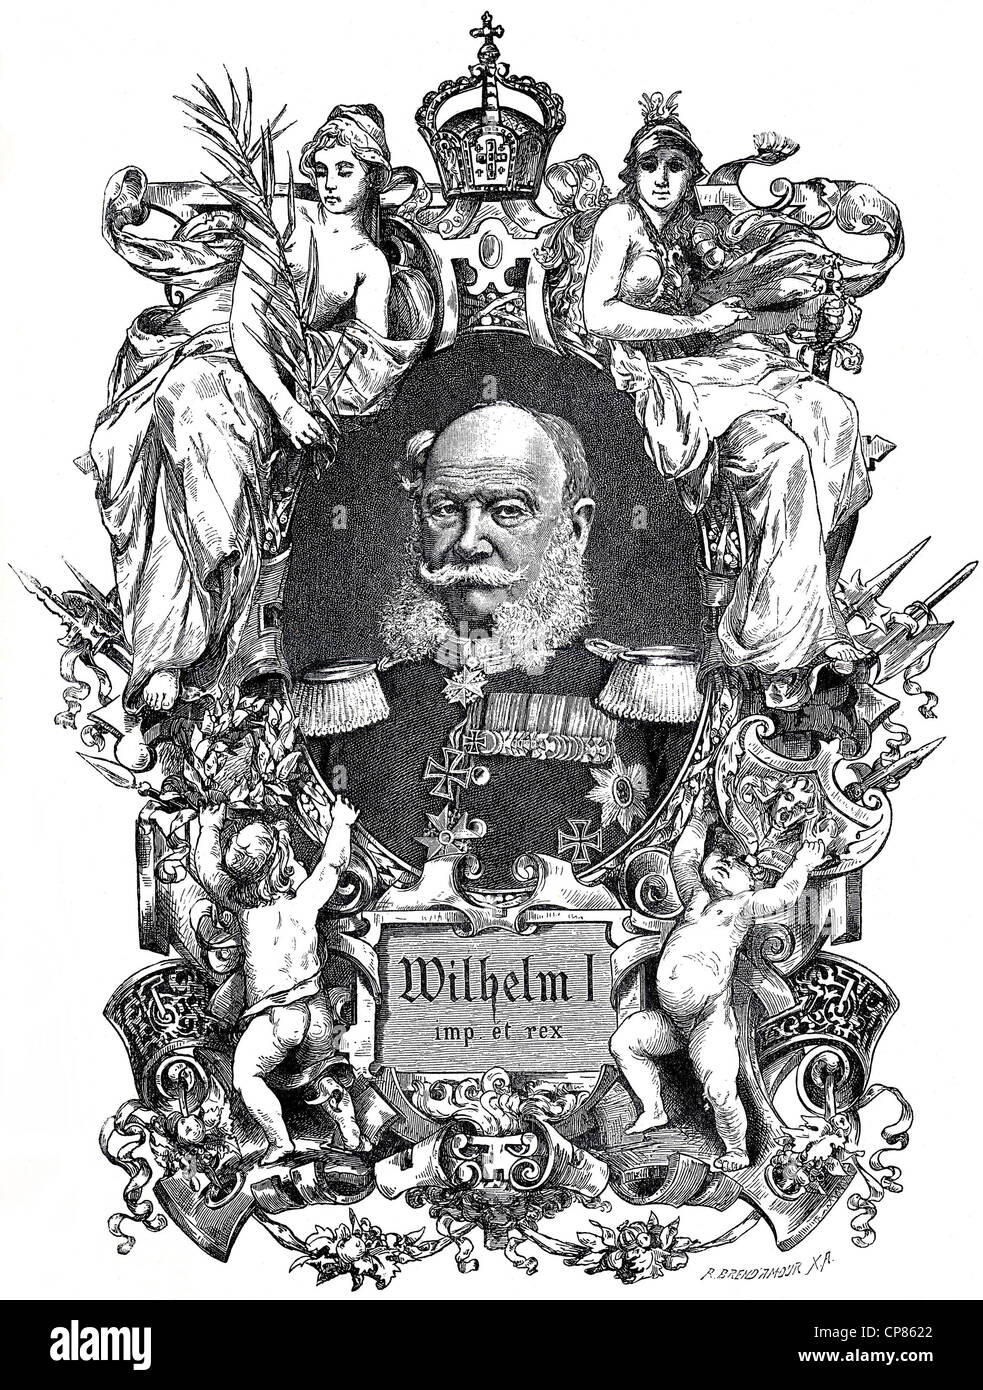 Wilhelm I, Wilhelm Friedrich Ludwig of Prussia, 1797 - 1888, historical copper engraving from the 19th Century, - Stock Image